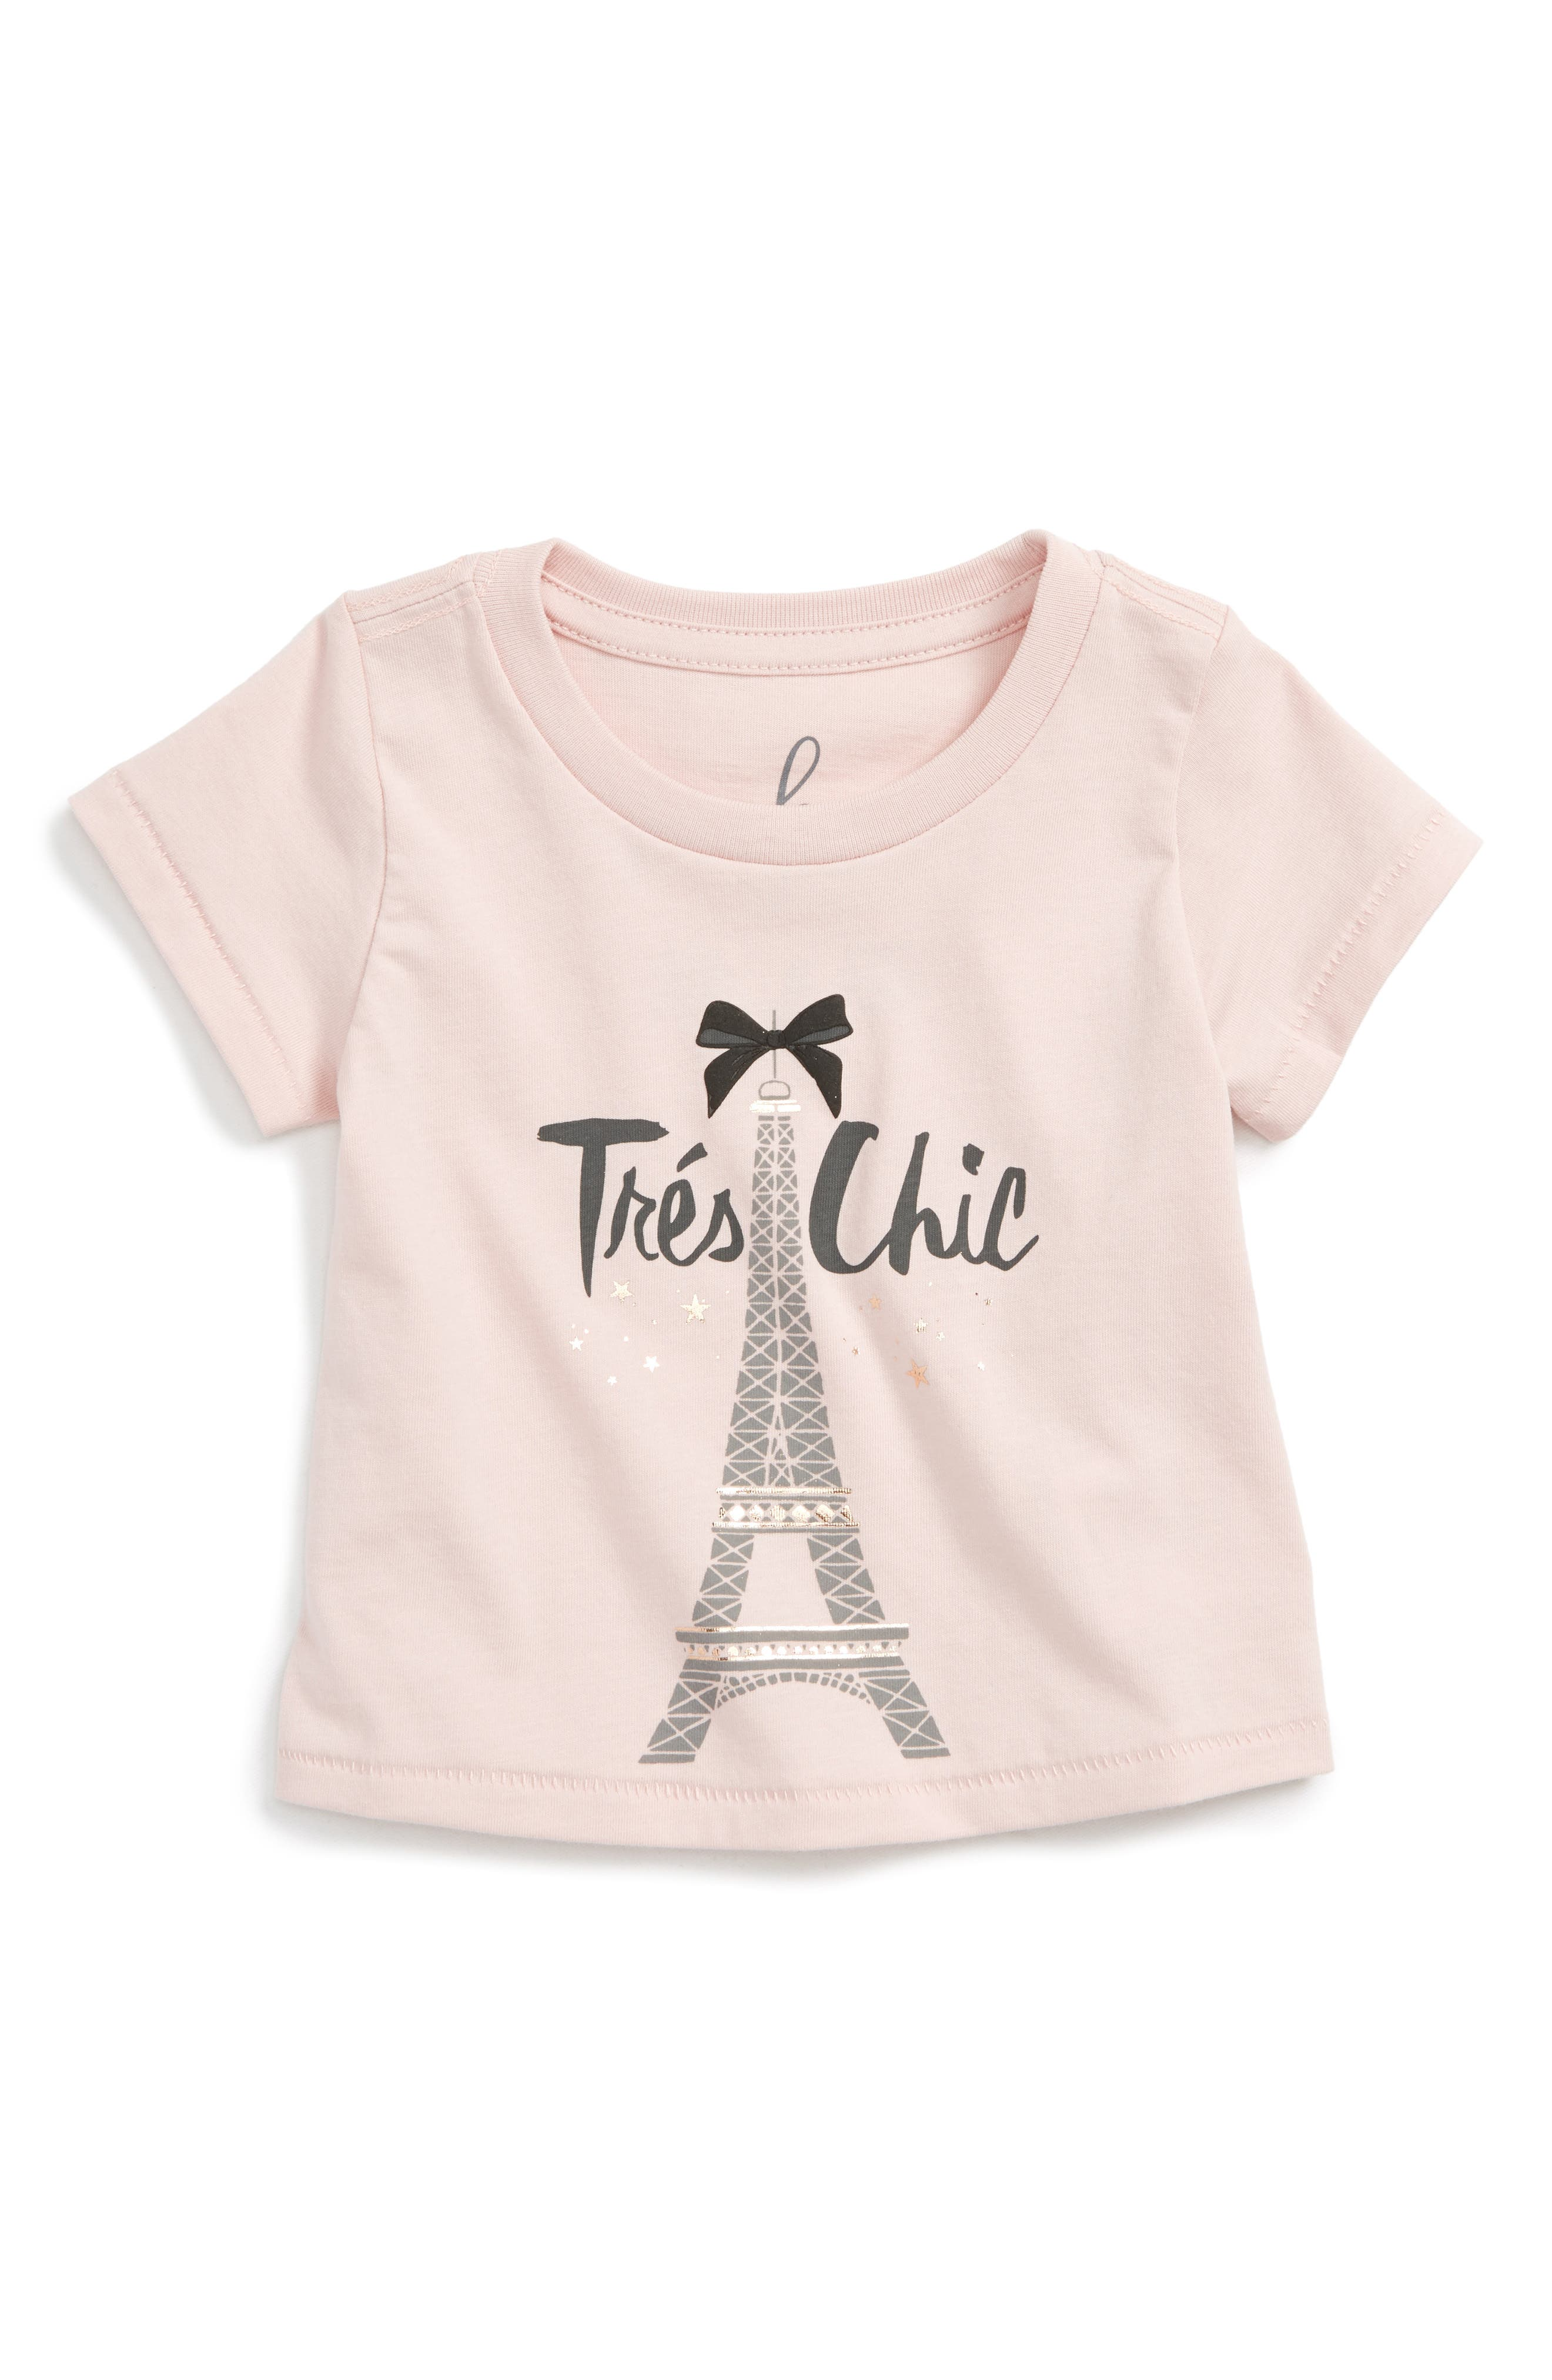 Peek Trés Chic Graphic Tee (Baby Girls)